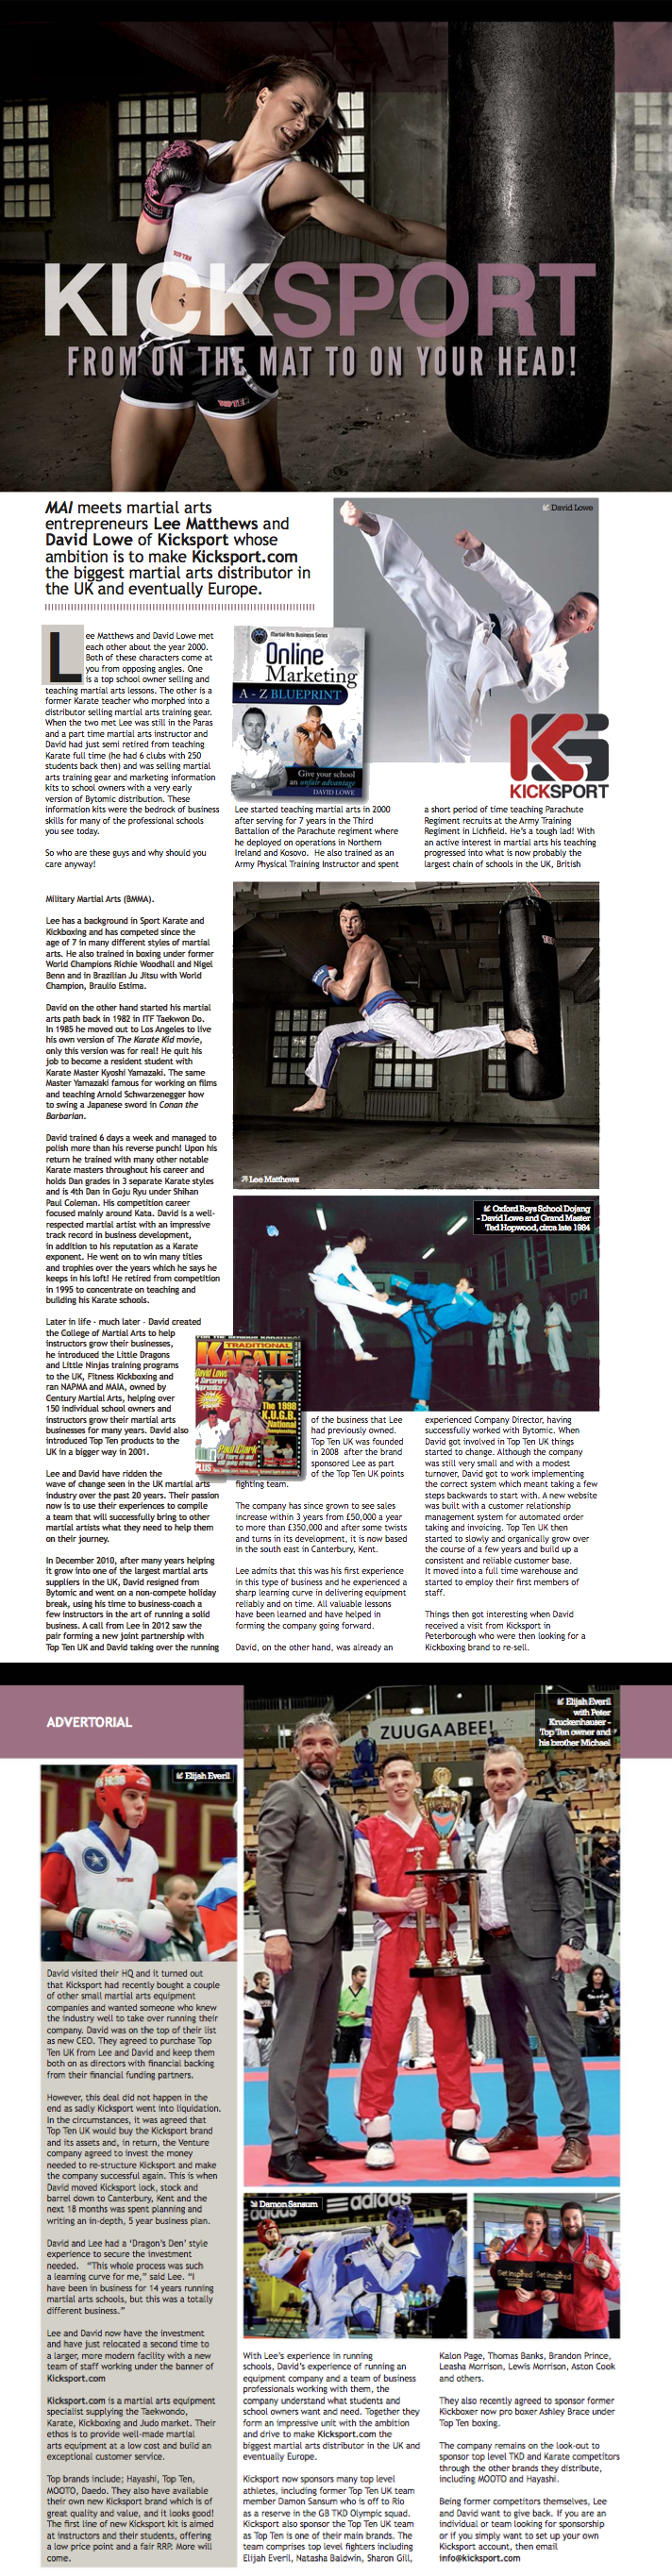 kicksport.com-about-us-martialartsillustrated-full-3page-article-.png